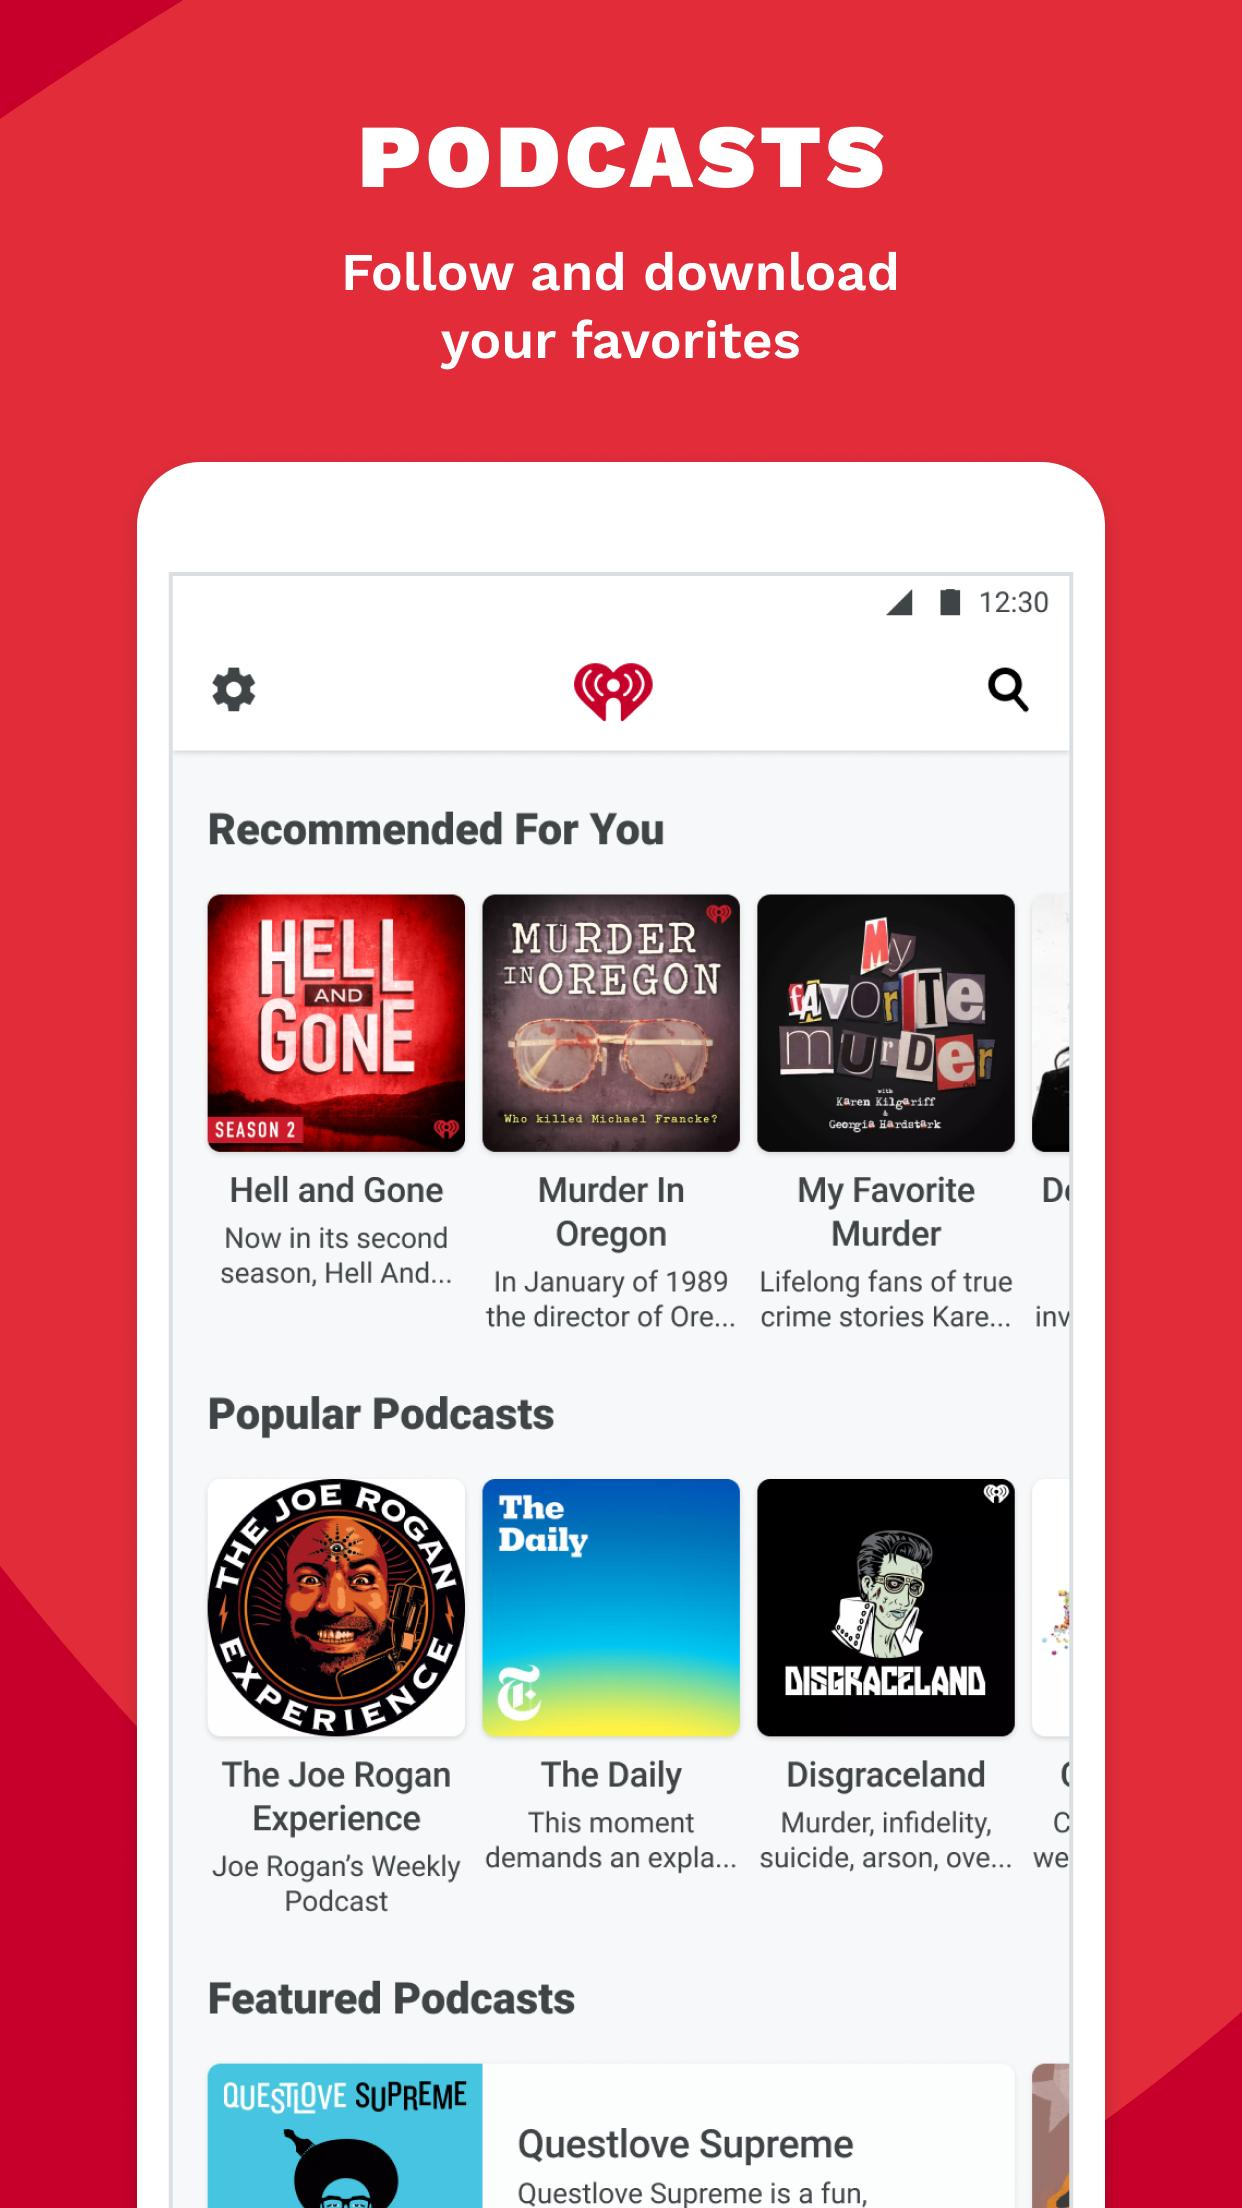 iHeartRadio Radio, Podcasts & Music On Demand 9.5.0 Screenshot 4